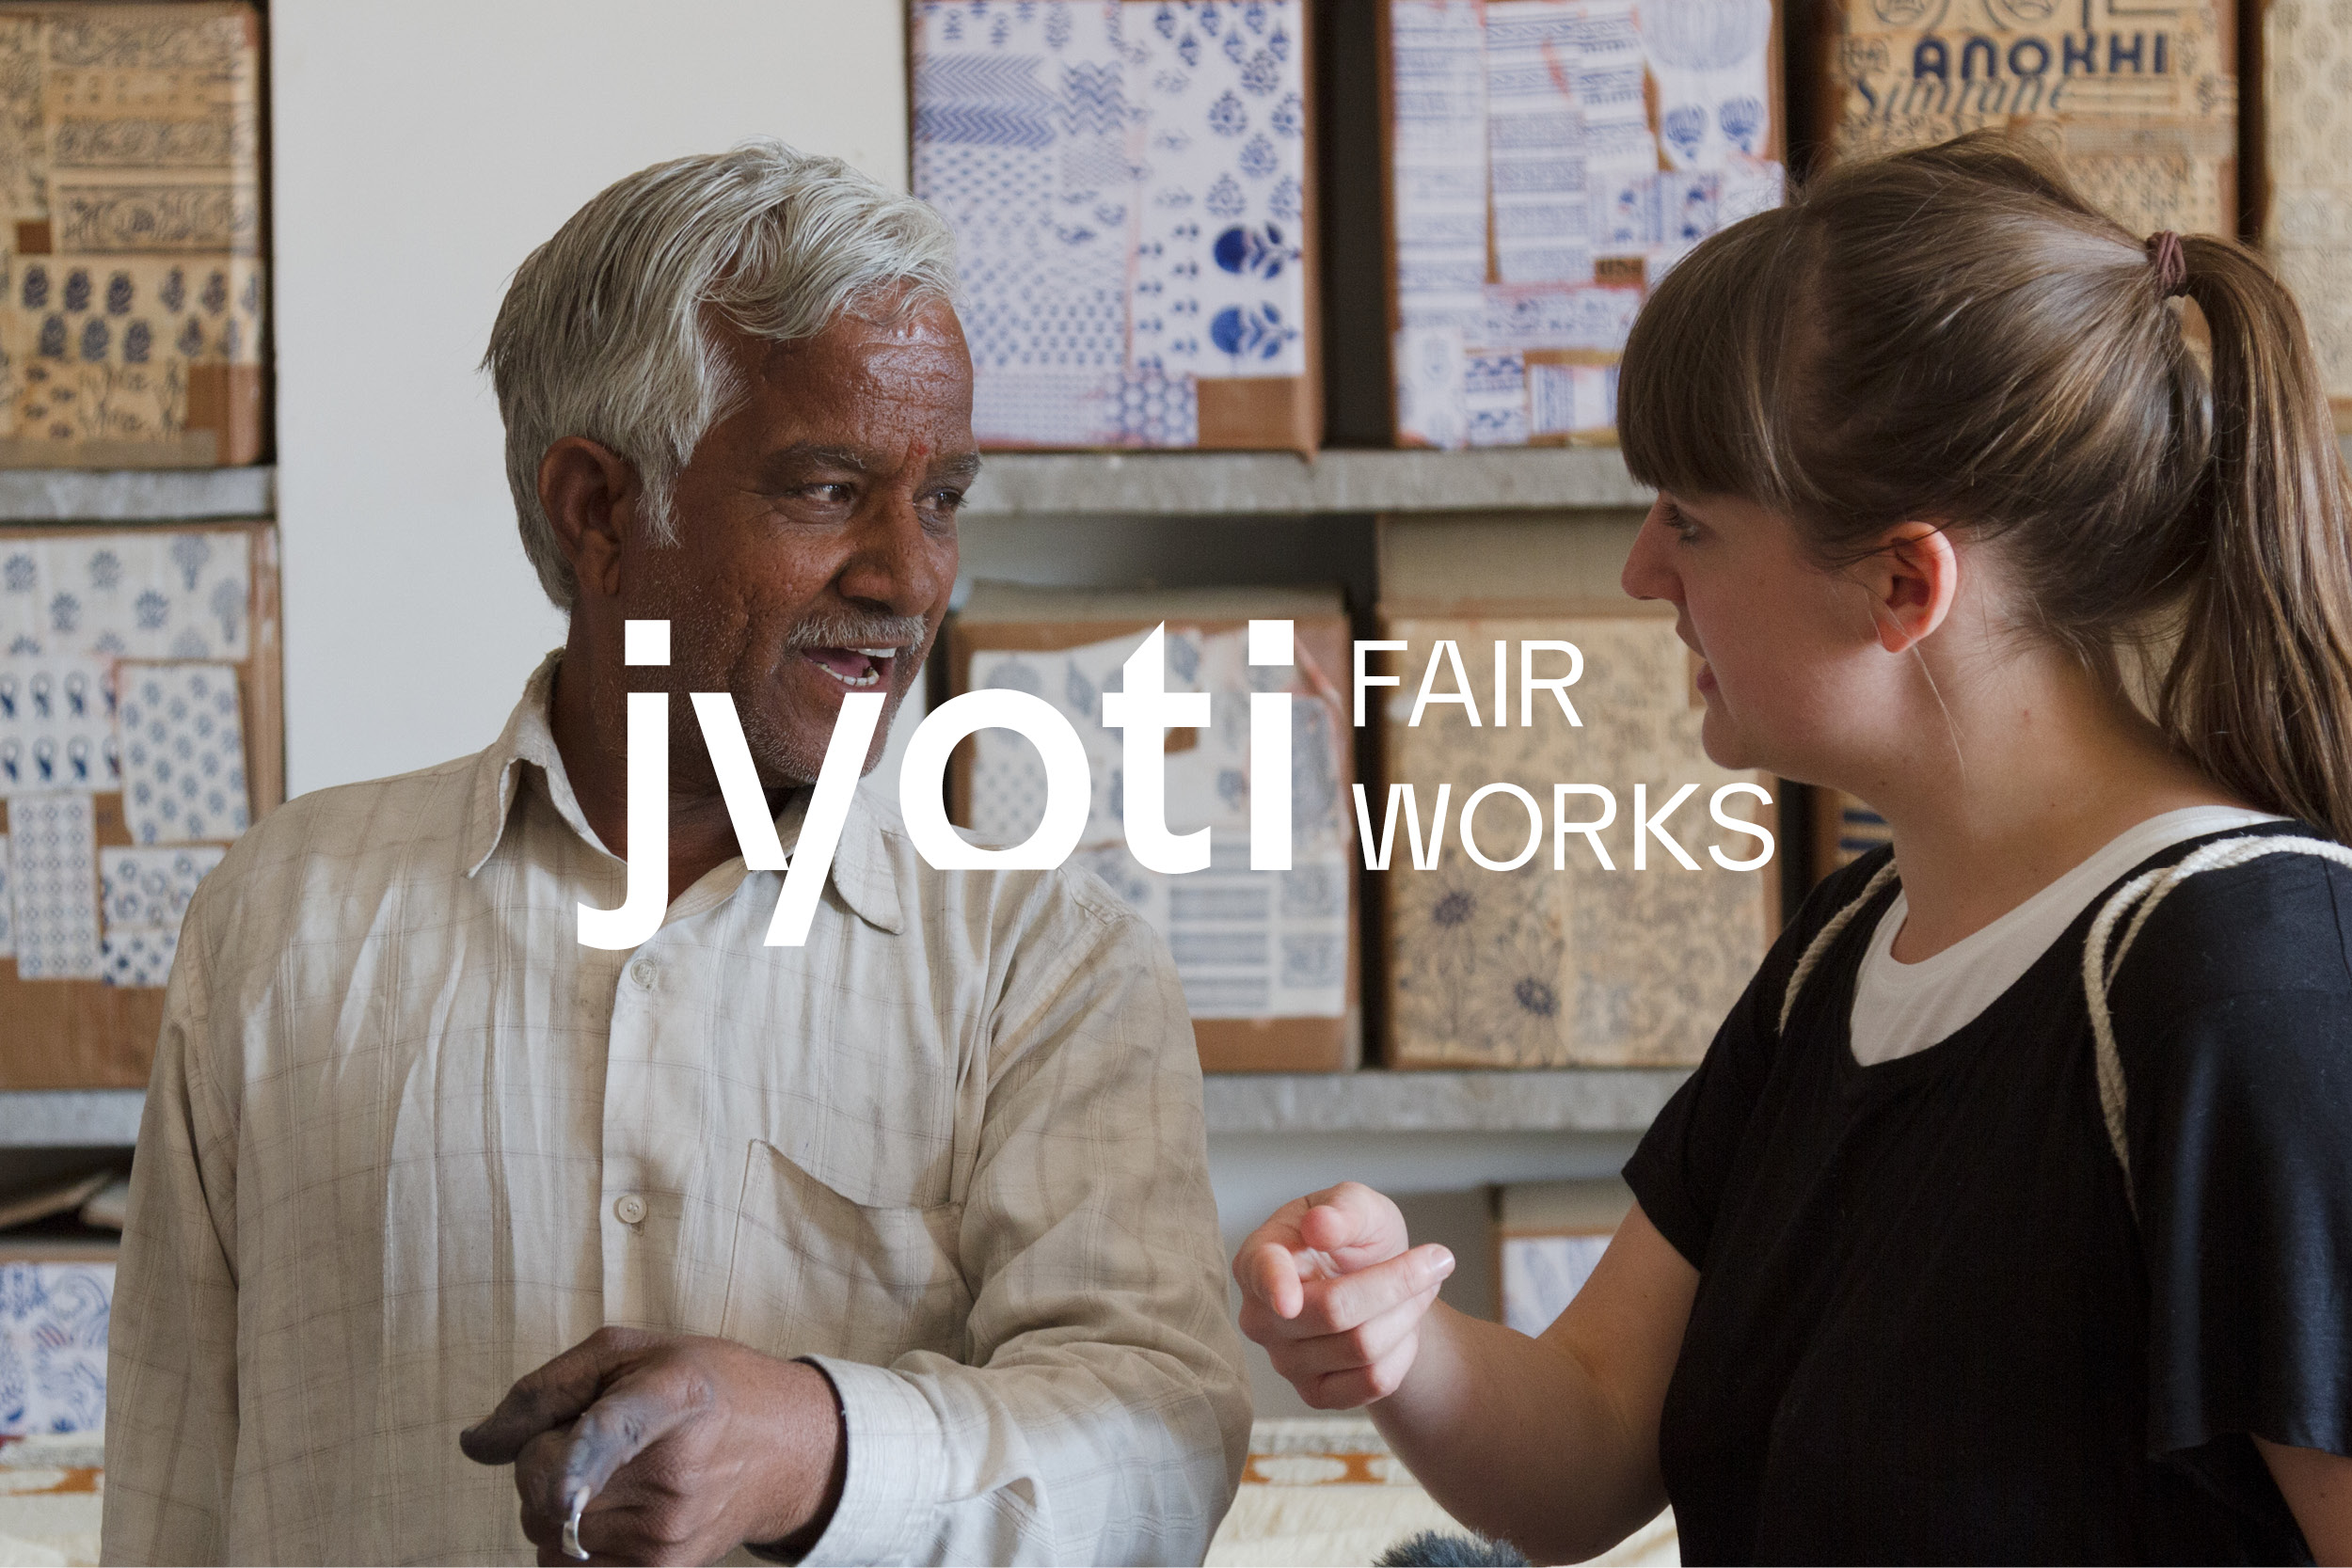 Jyoti – Fair Works